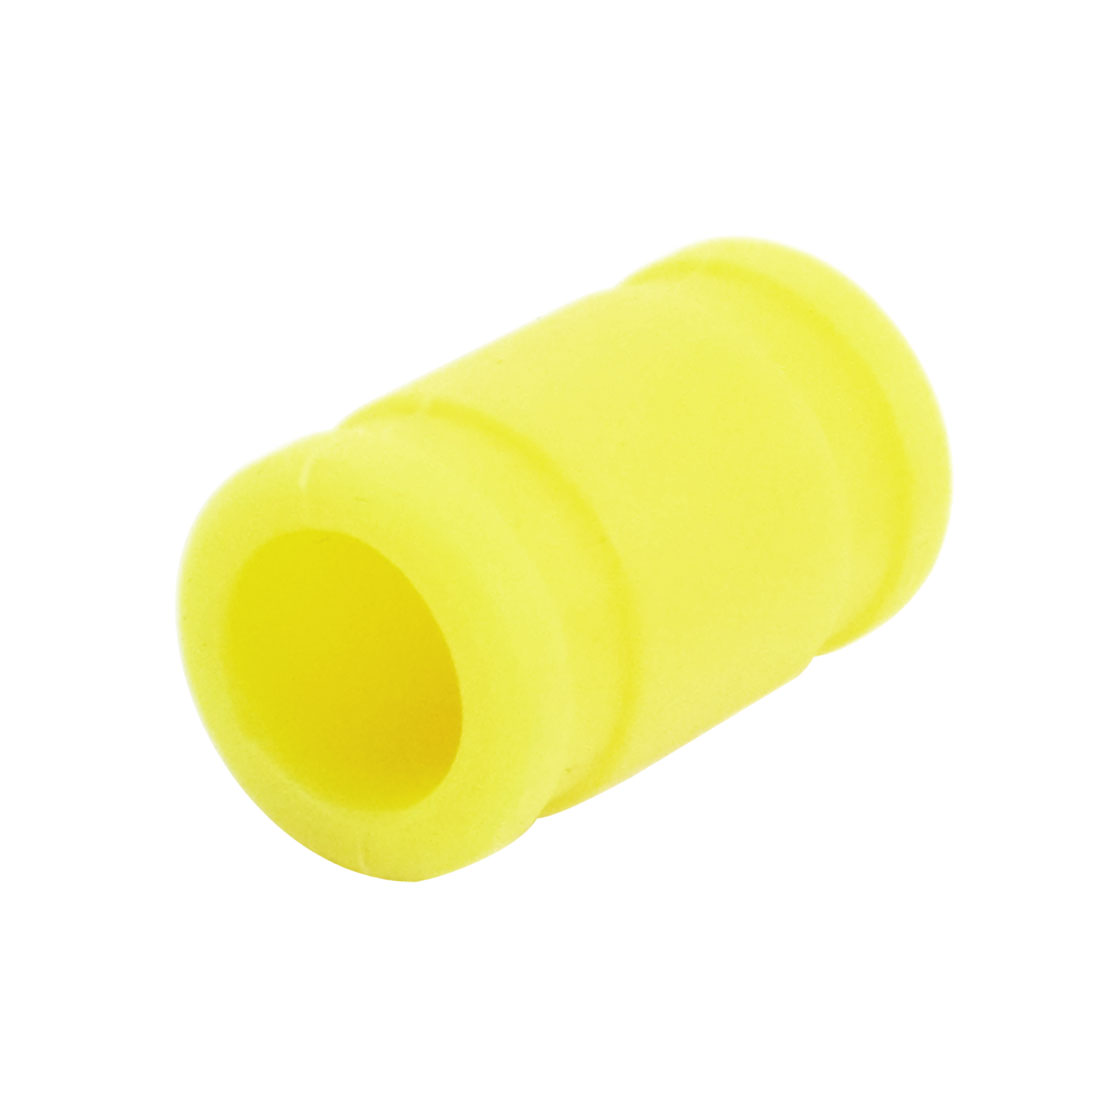 15mm x 24mm x 39mm Yellow Silicon Connector Tube Adapter for 1/8 RC Model Car Vent-Pipe